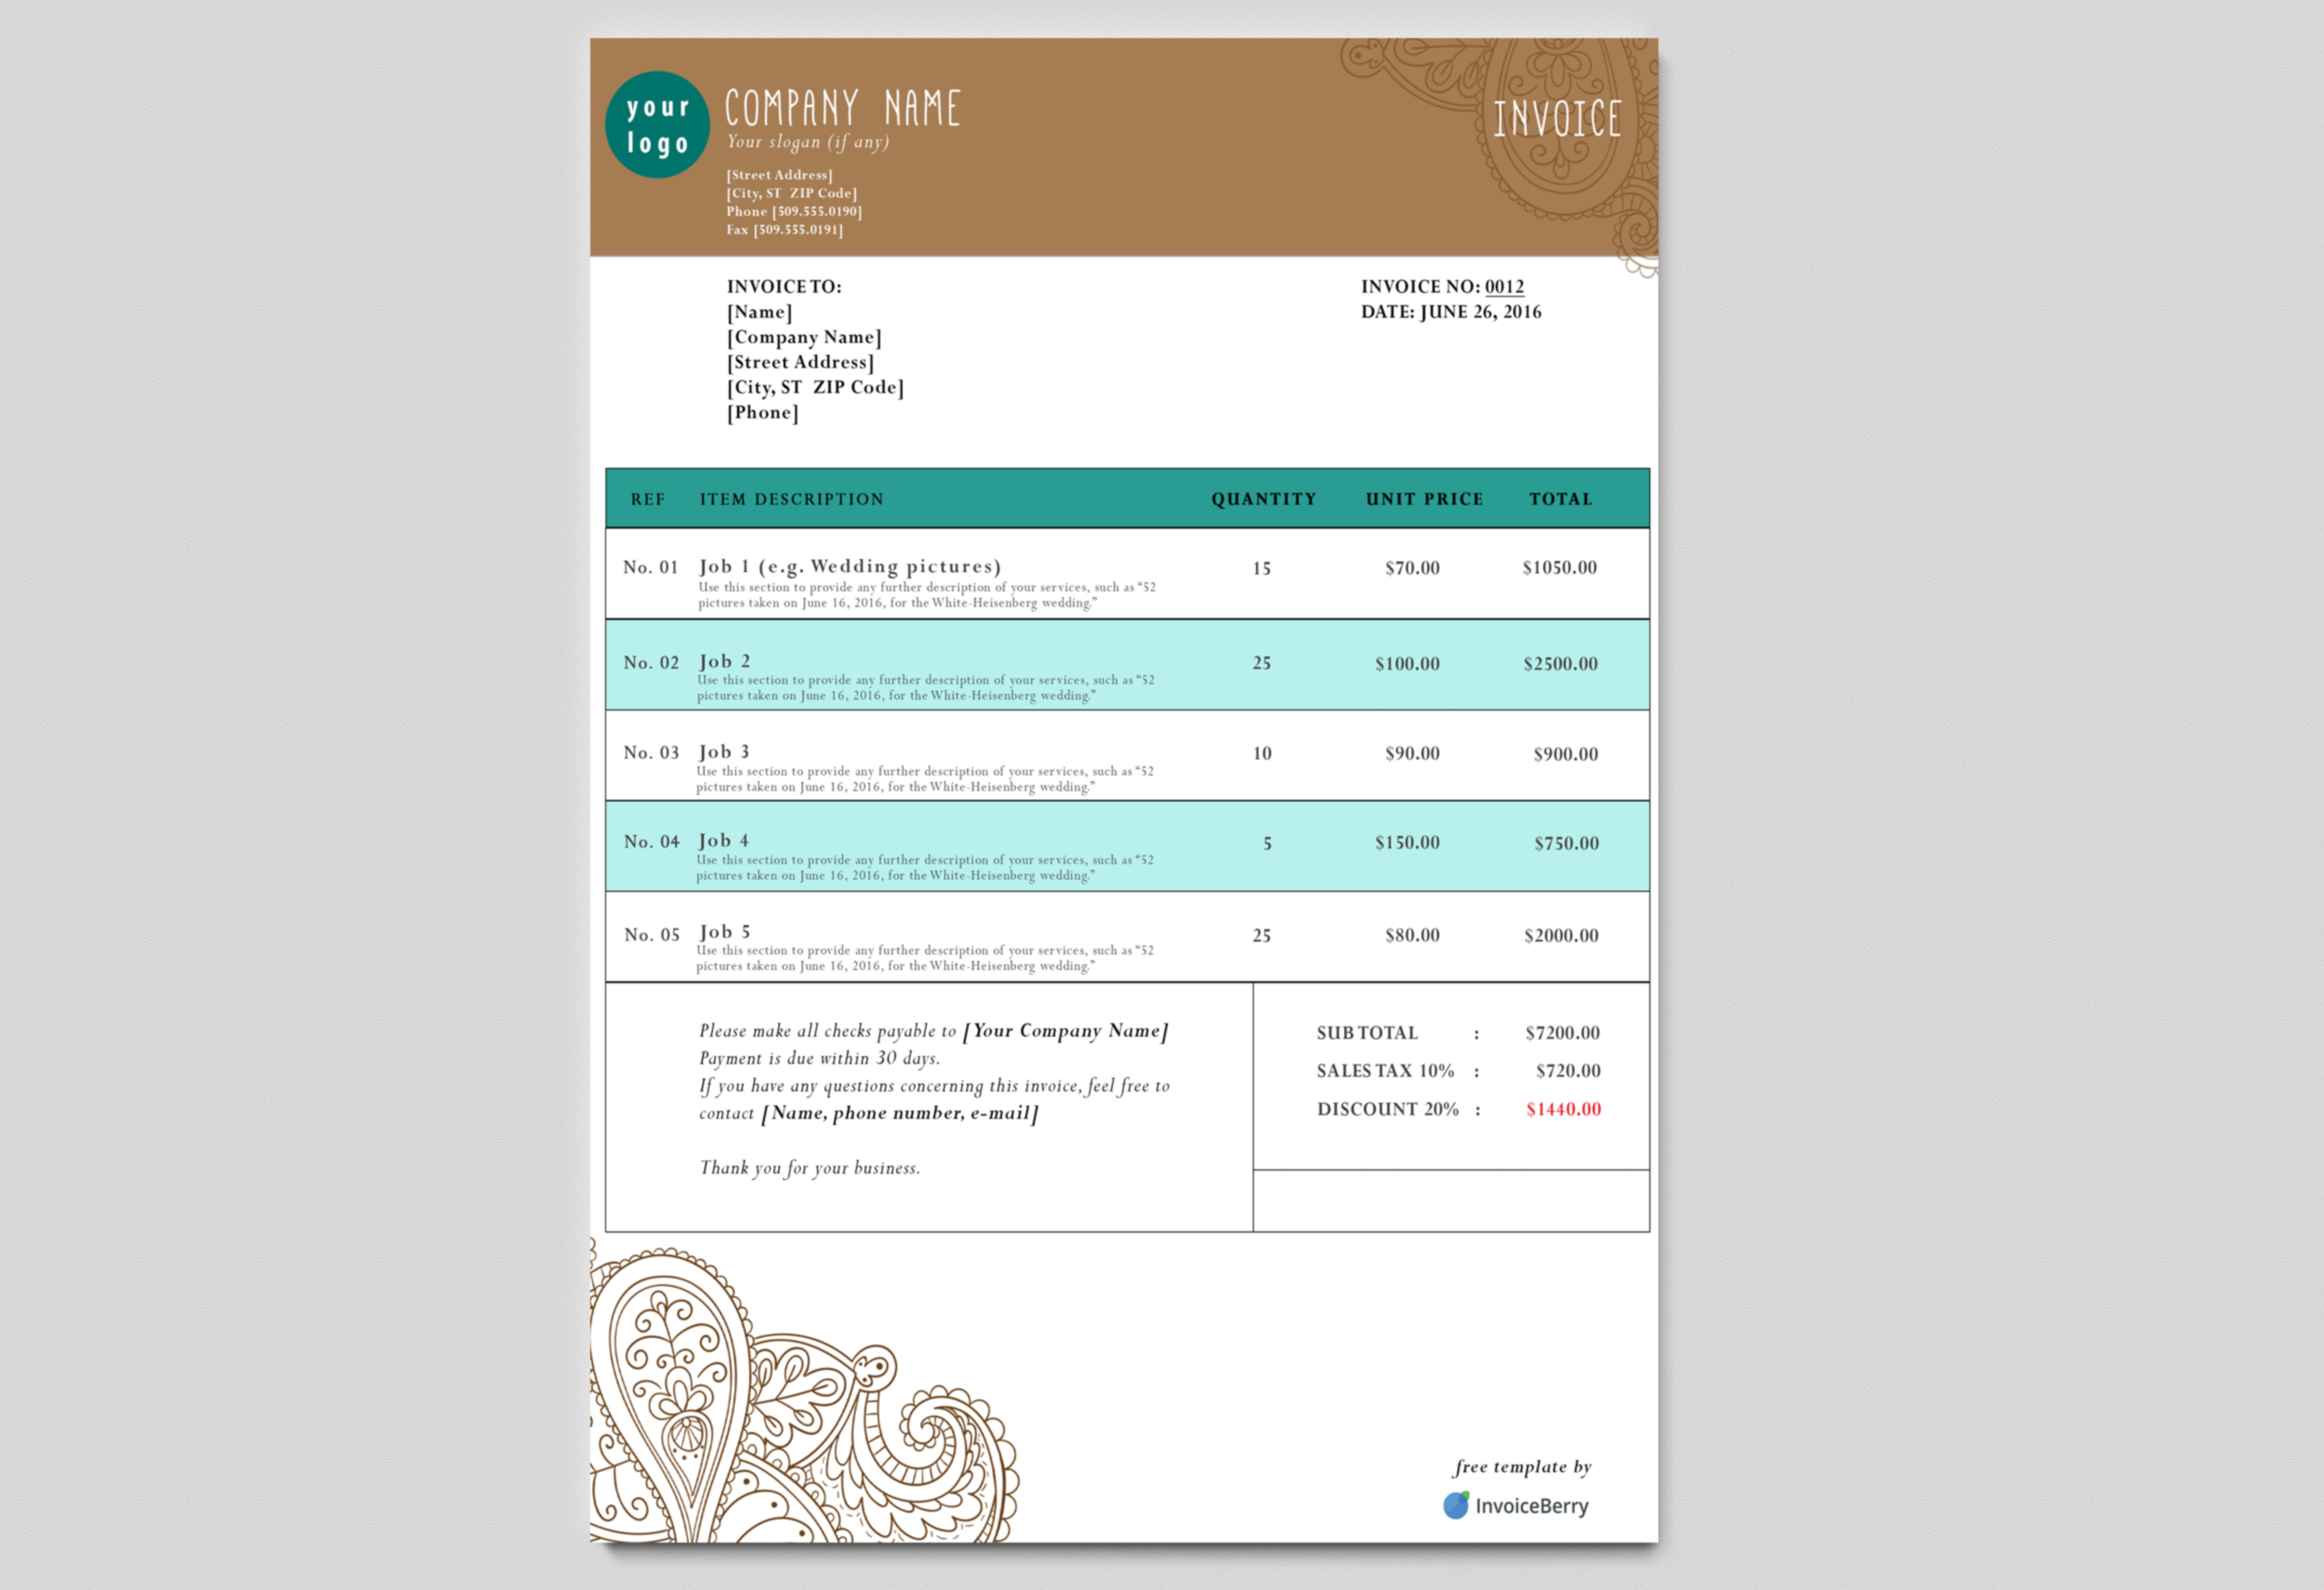 Our New Free Psd Invoice Templates Come In A Variety Of Different